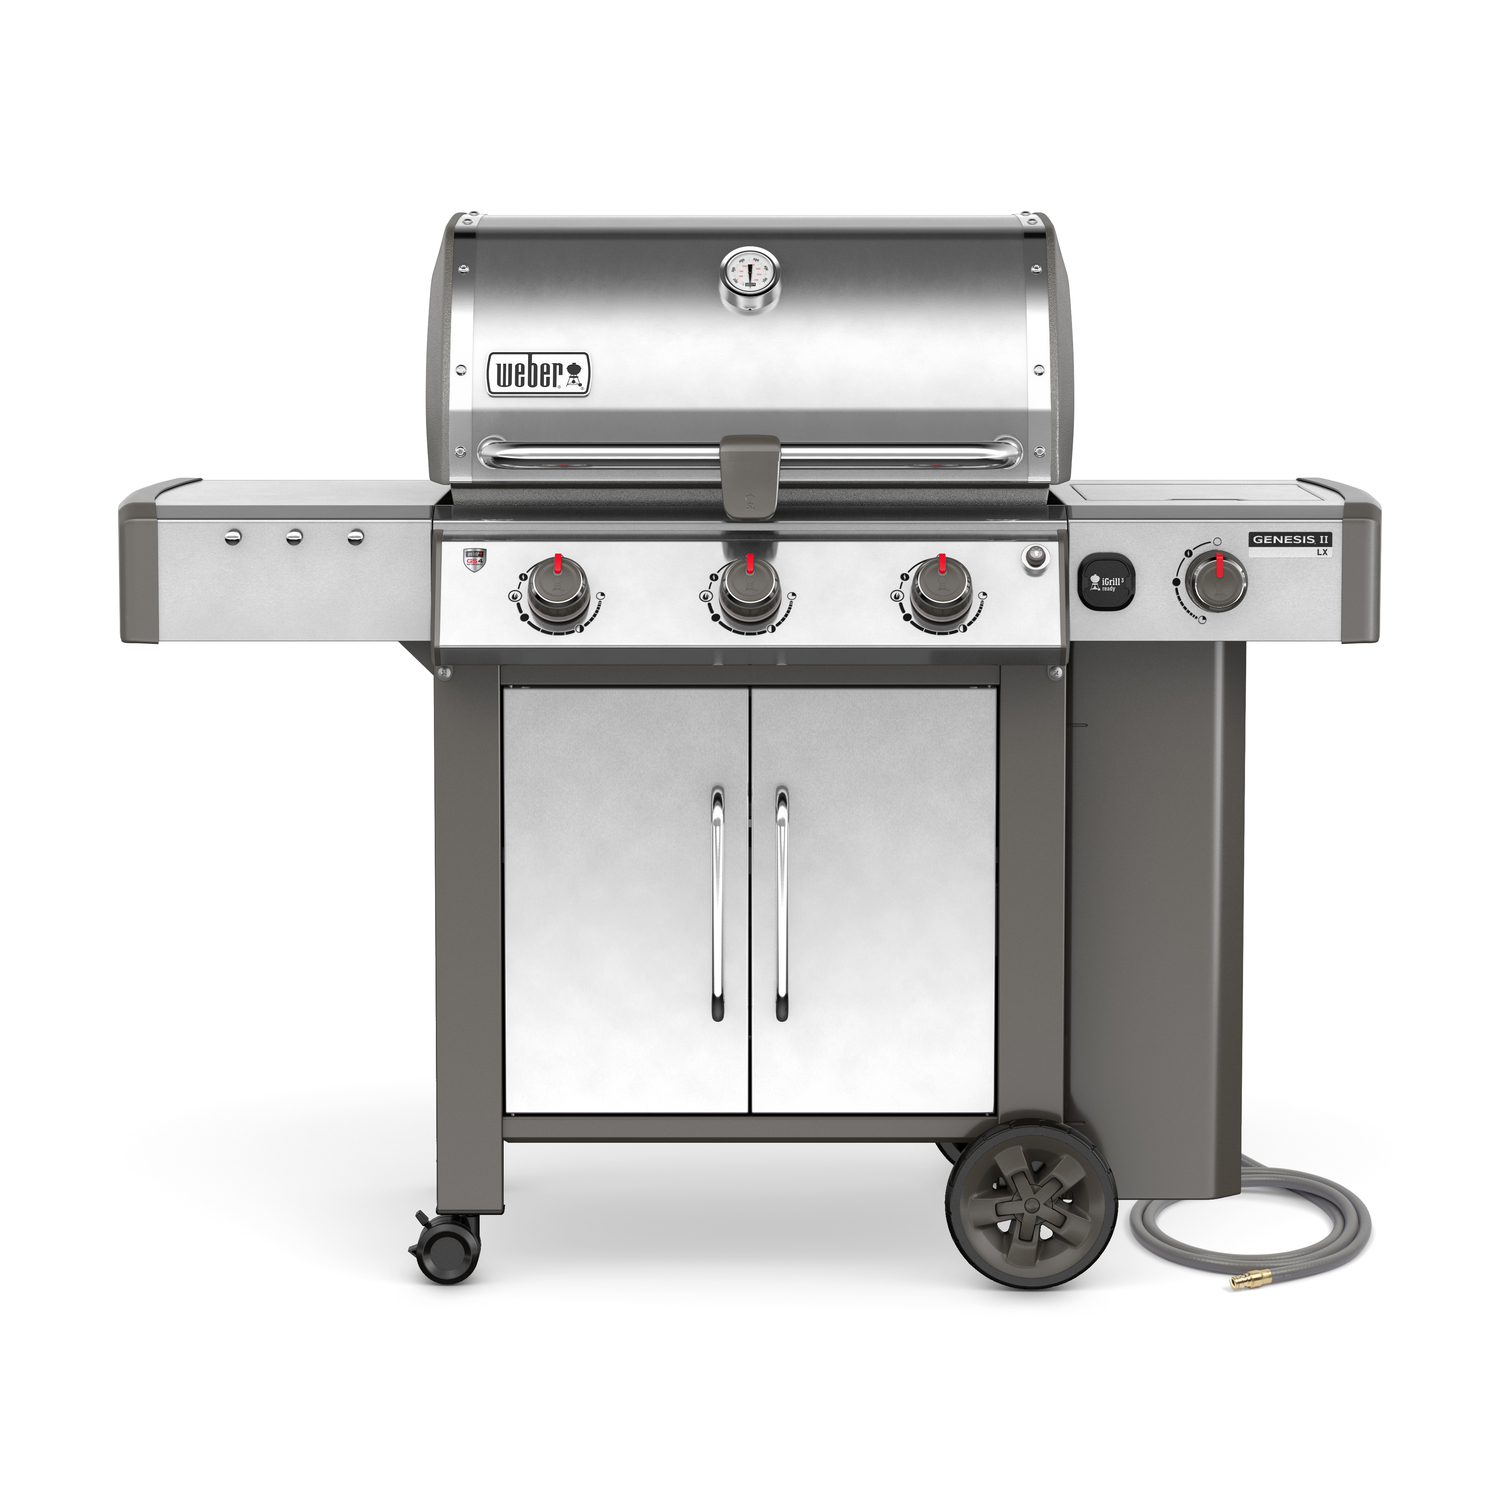 Weber  Genesis II LX S-340  3 burners Natural Gas  Stainless Steel  Grill  43500 BTU